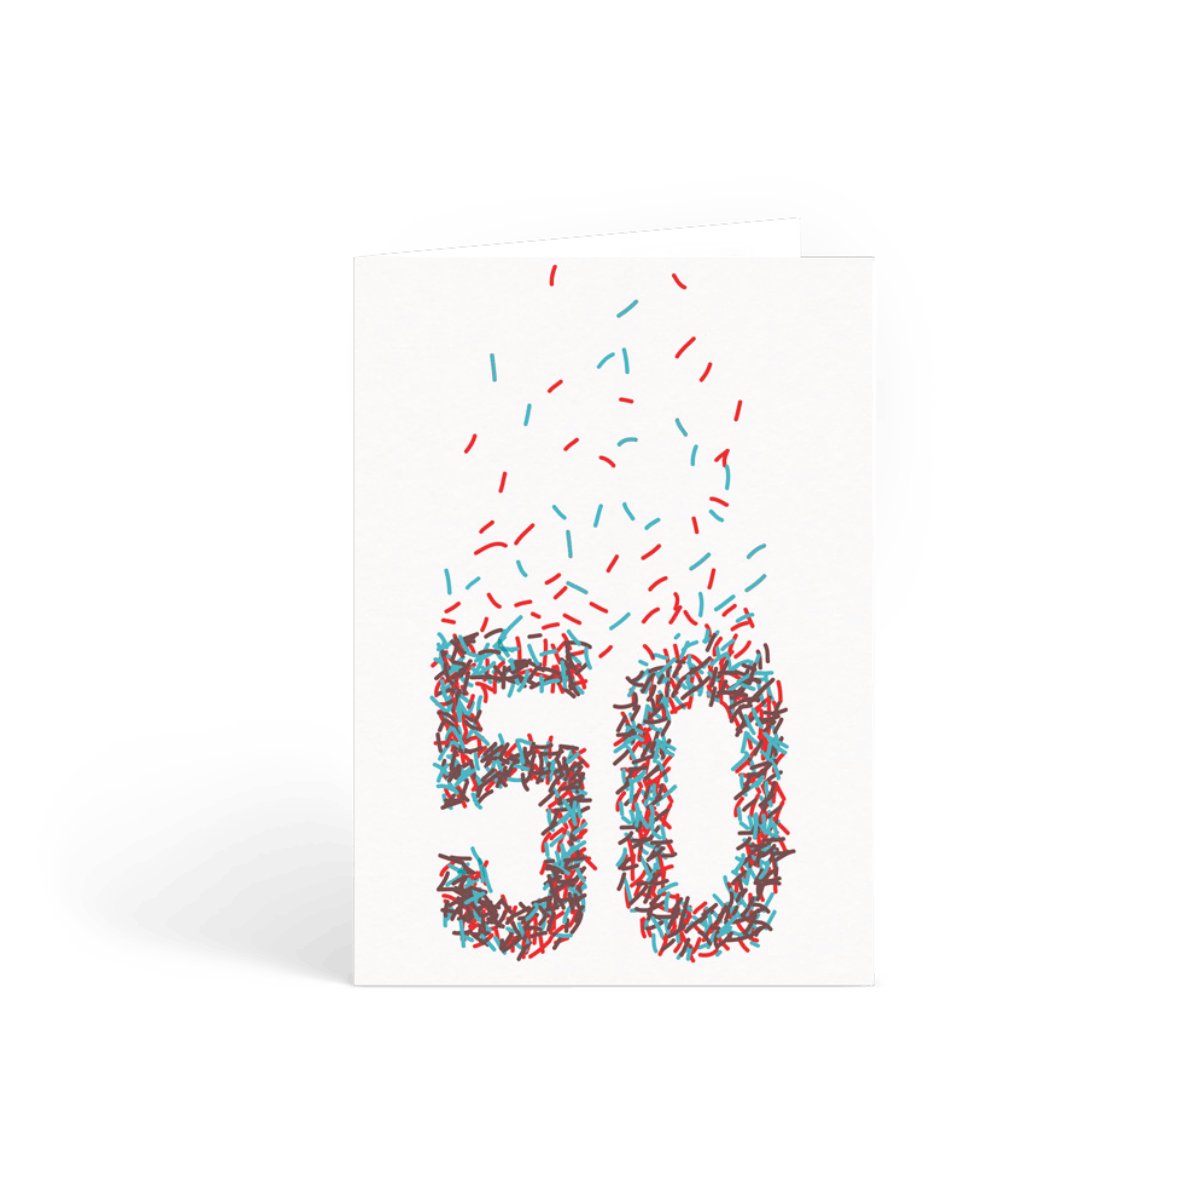 Https%3a%2f%2fwww.papier.com%2fproduct image%2f3505%2f2%2f50th sprinkles 937 front 1453910858.png?ixlib=rb 1.1